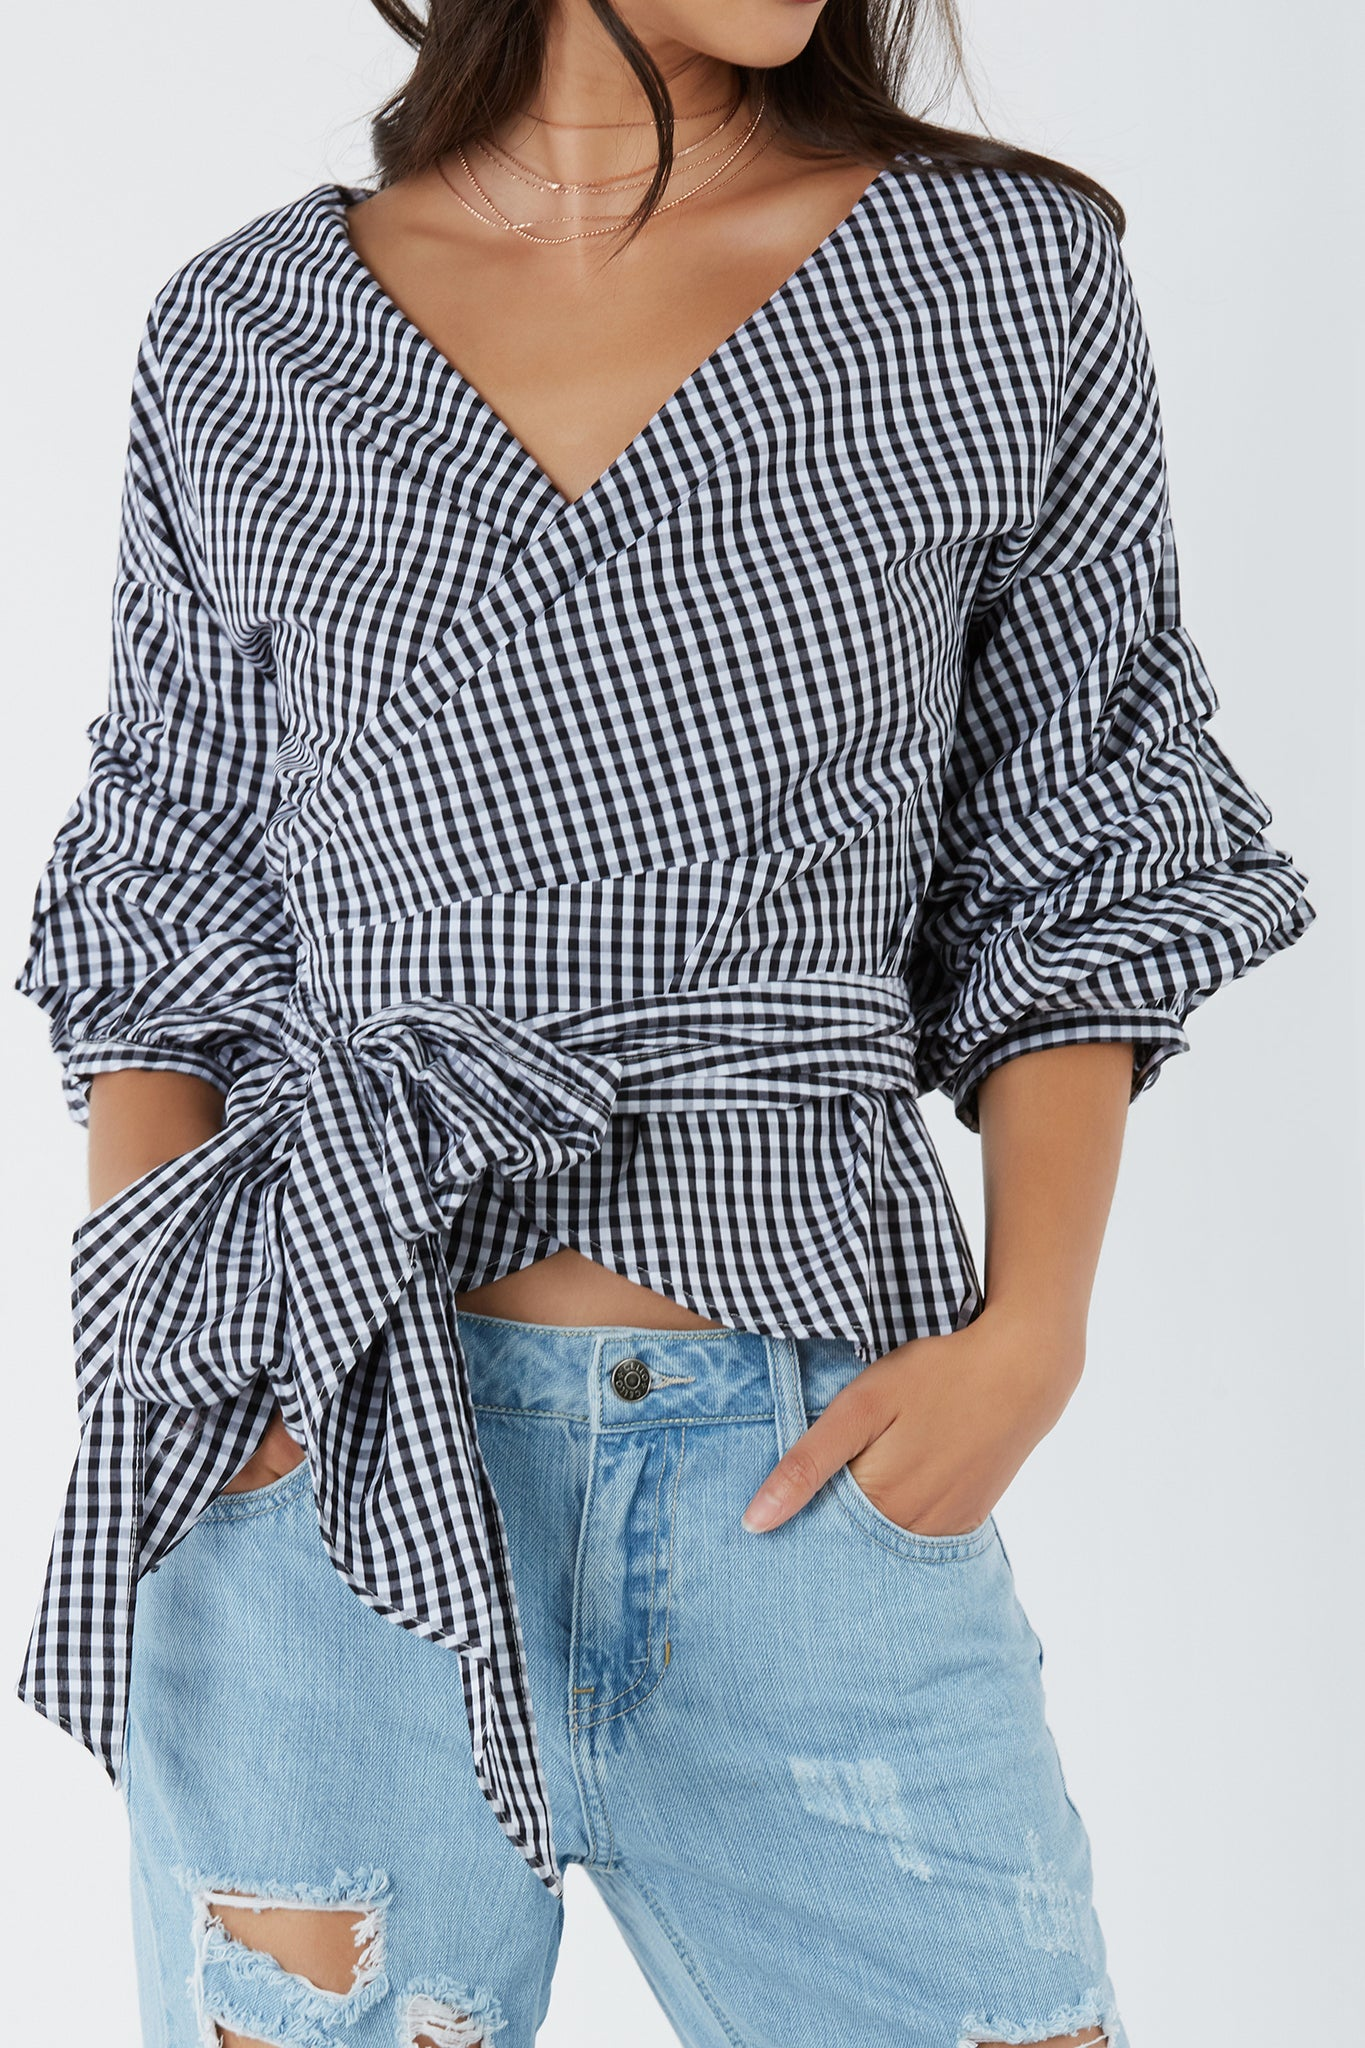 Bold checkered top with chic V-neckline. Wrap front closure with structured ruched sleeves.